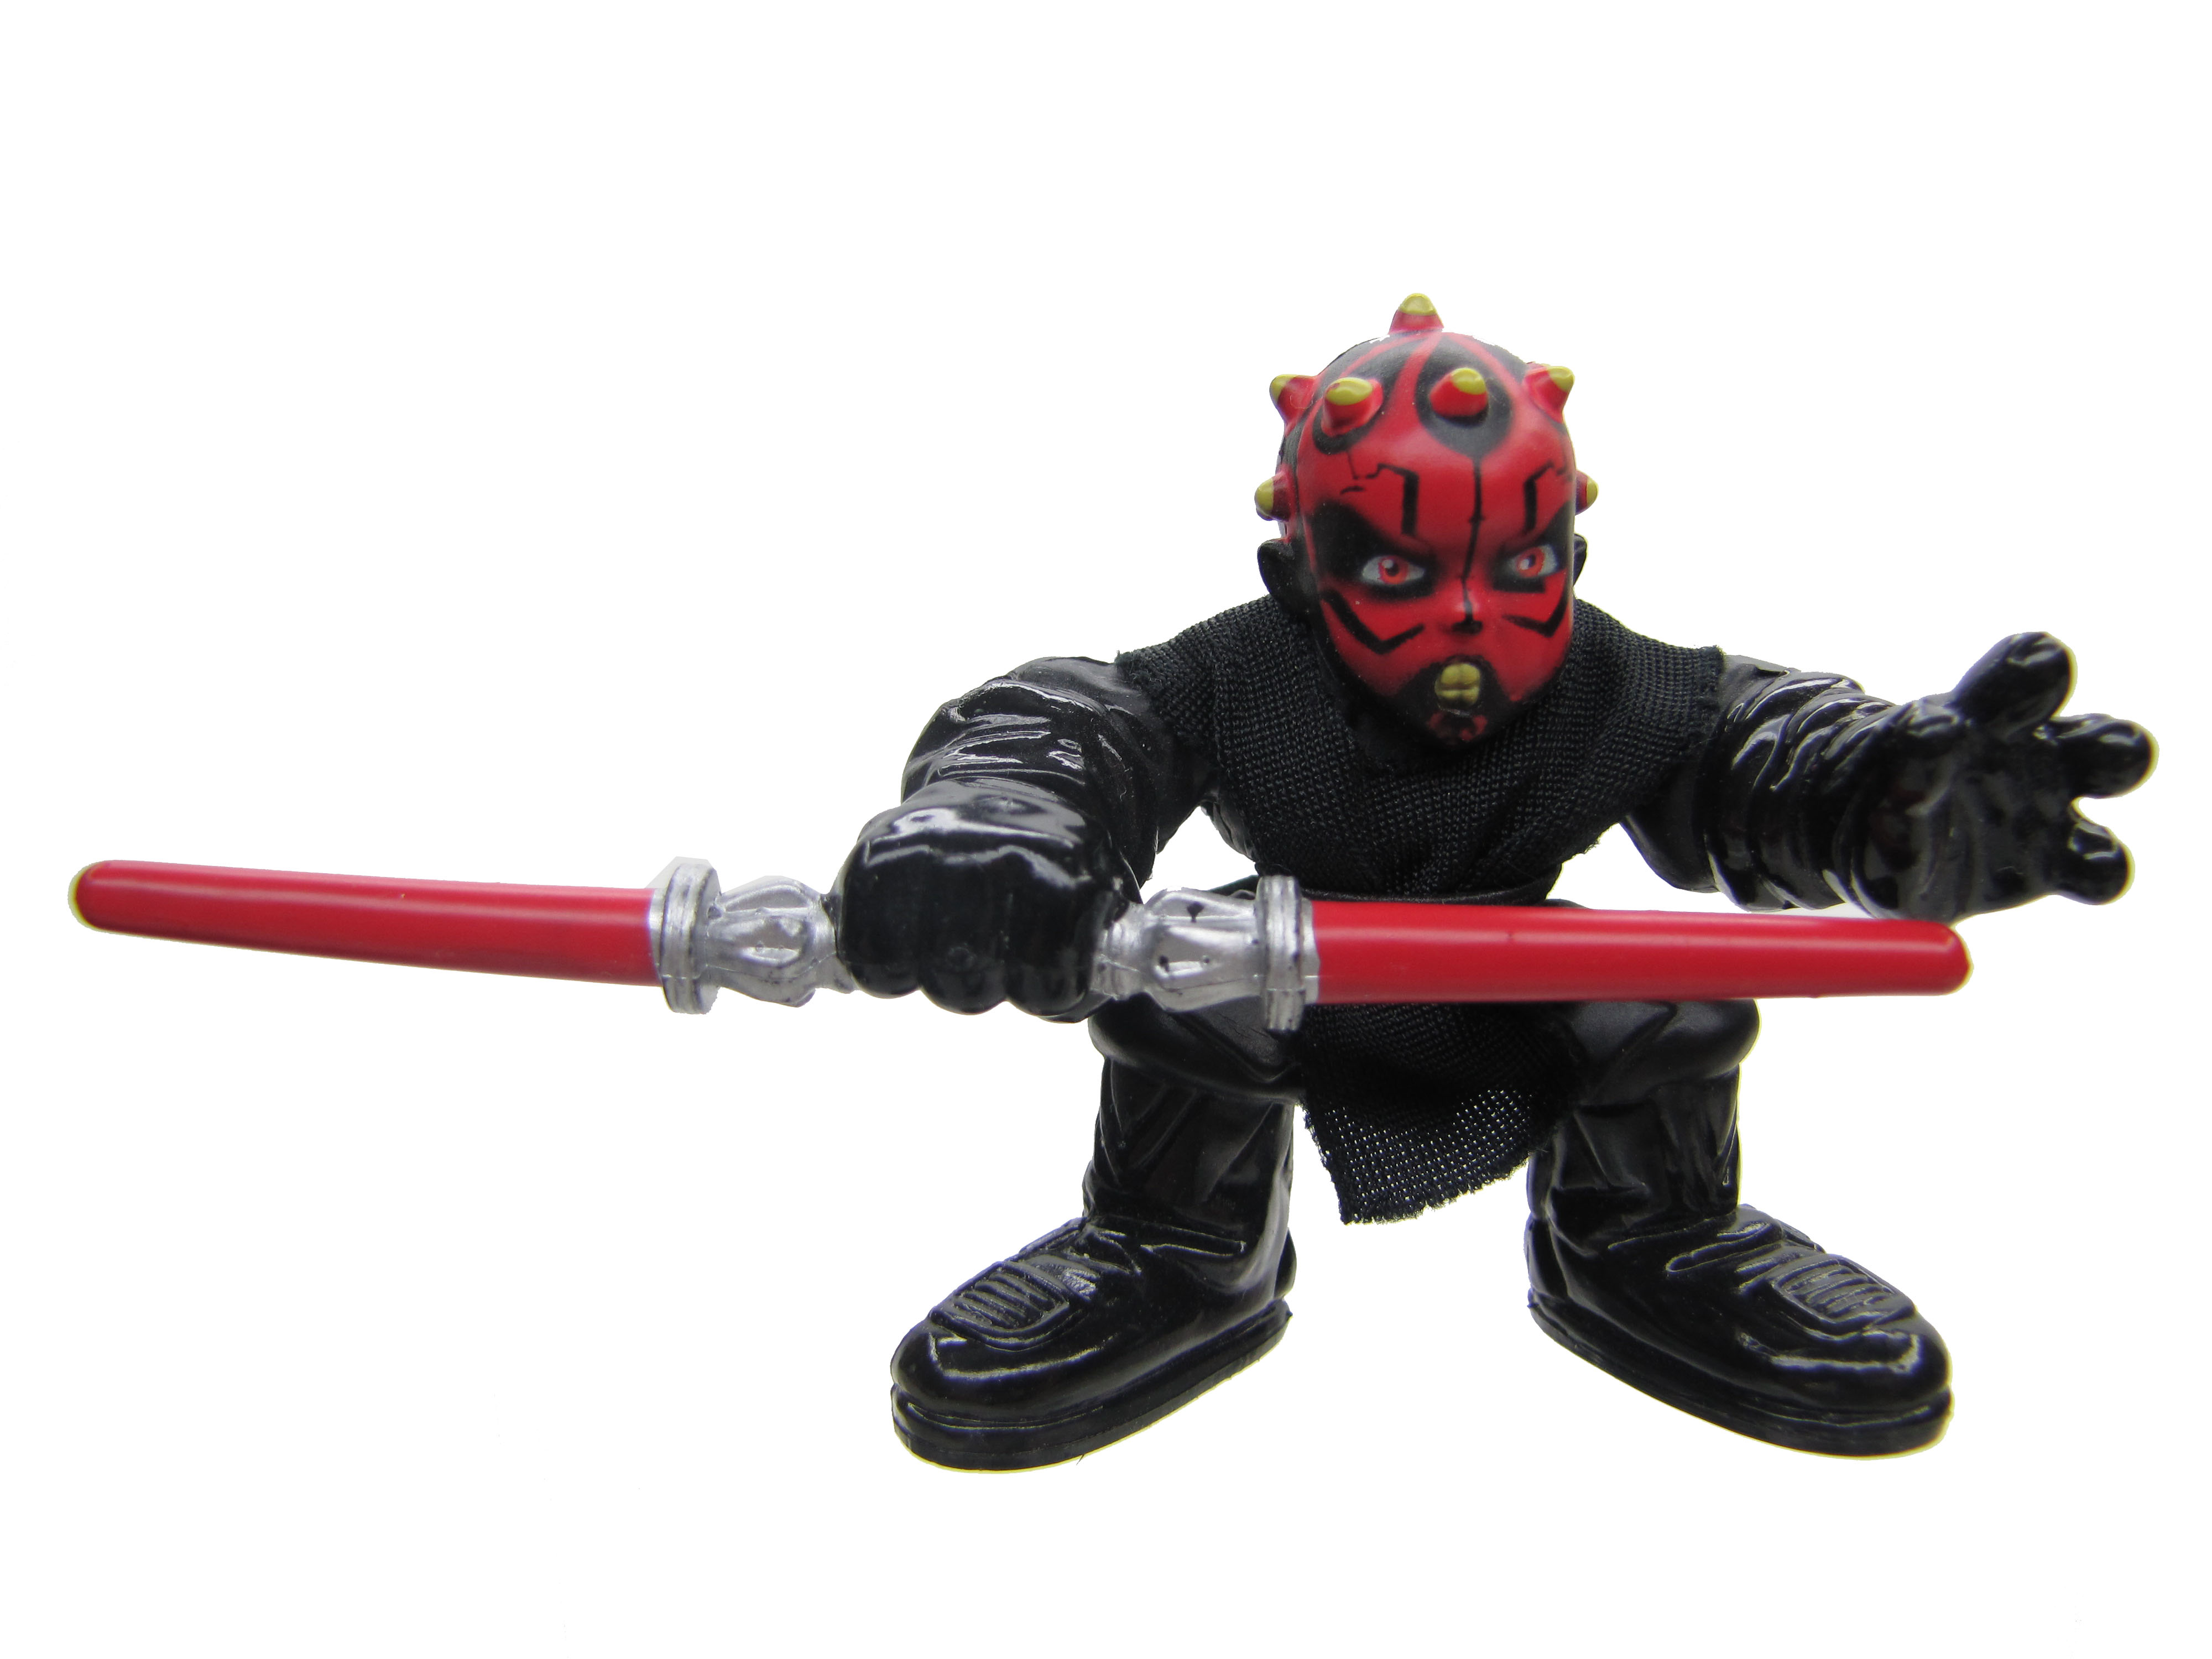 Star Wars Galactic Heroes BATTLE OF NABOO DARTH MAUL Complete